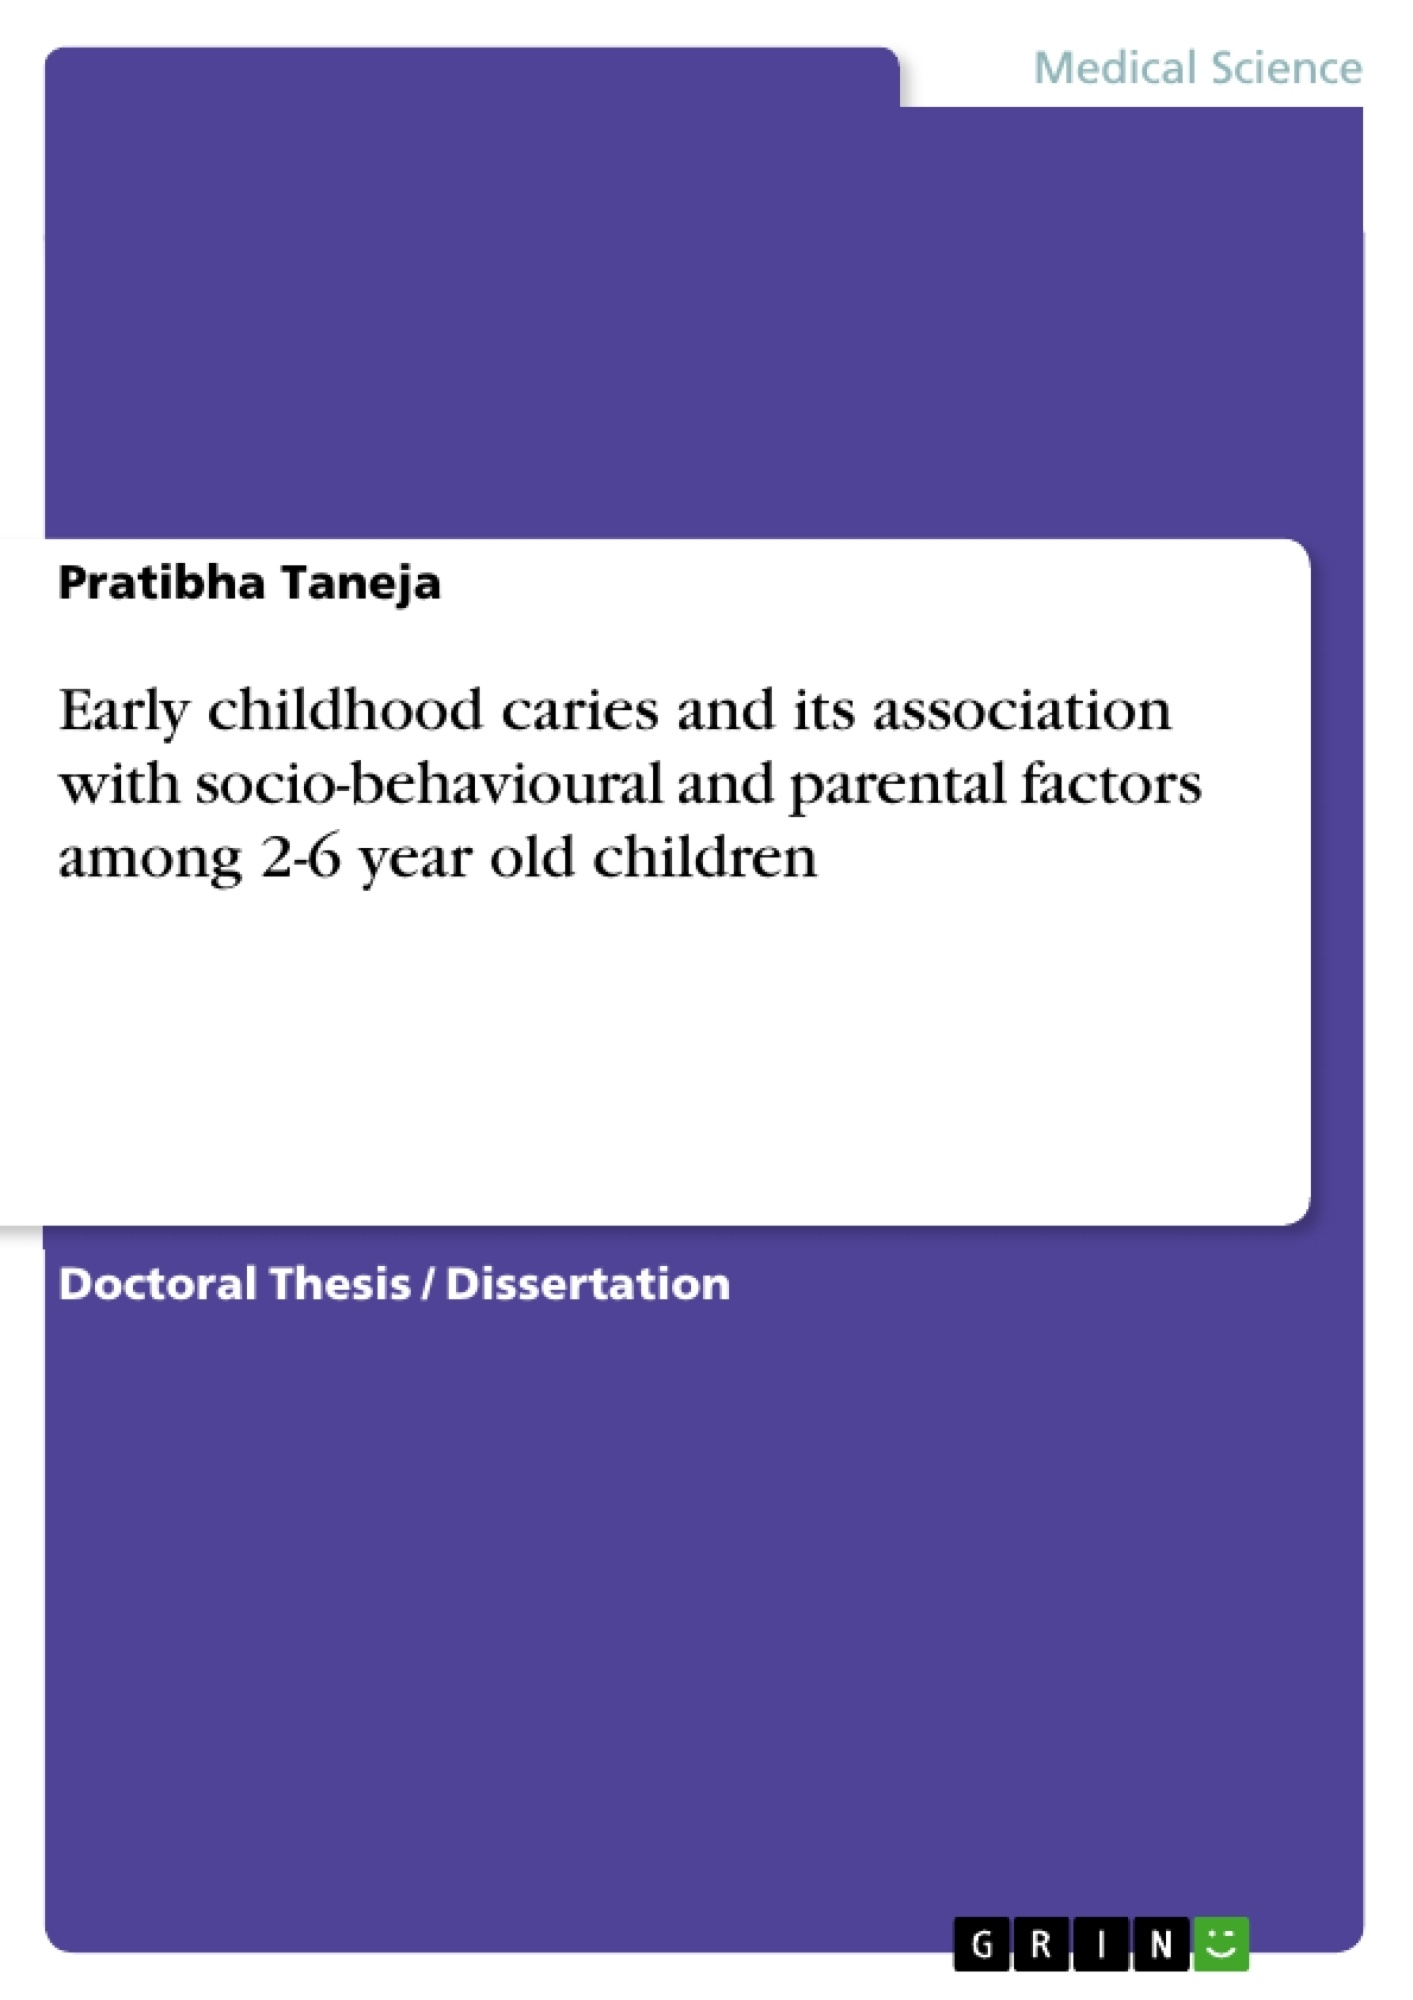 Title: Early childhood caries and its association with socio-behavioural and parental factors among 2-6 year old children